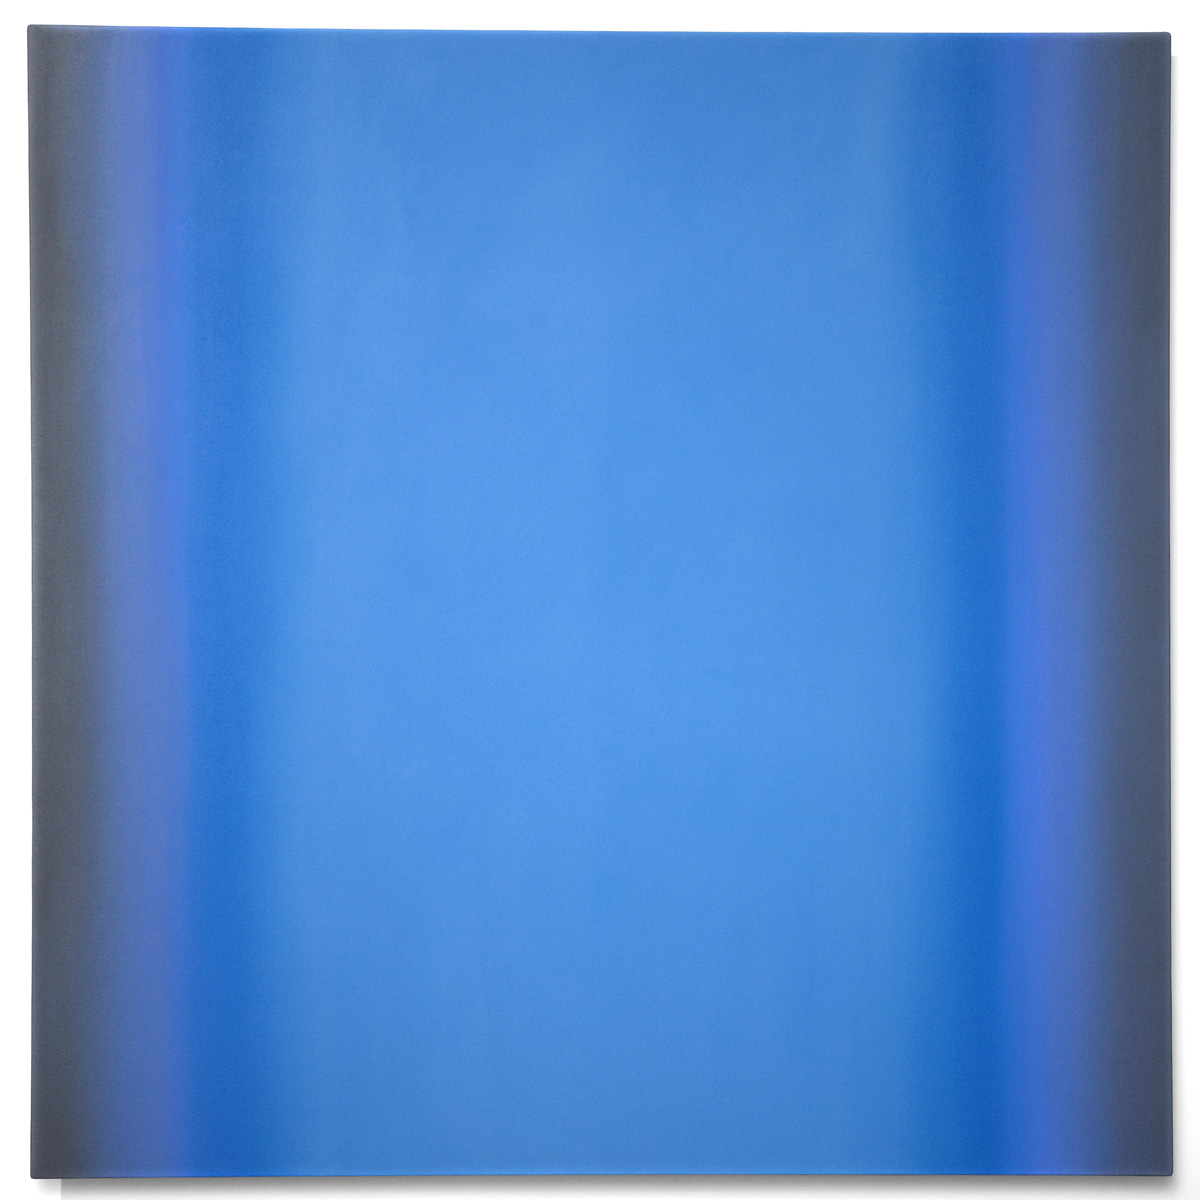 Blue Orange 7-S6060 (Violet Blue Light), Interplay Series, 2013, oil on canvas on custom beveled stretcher, 60 x 60 in. (153 x 153 cm.)